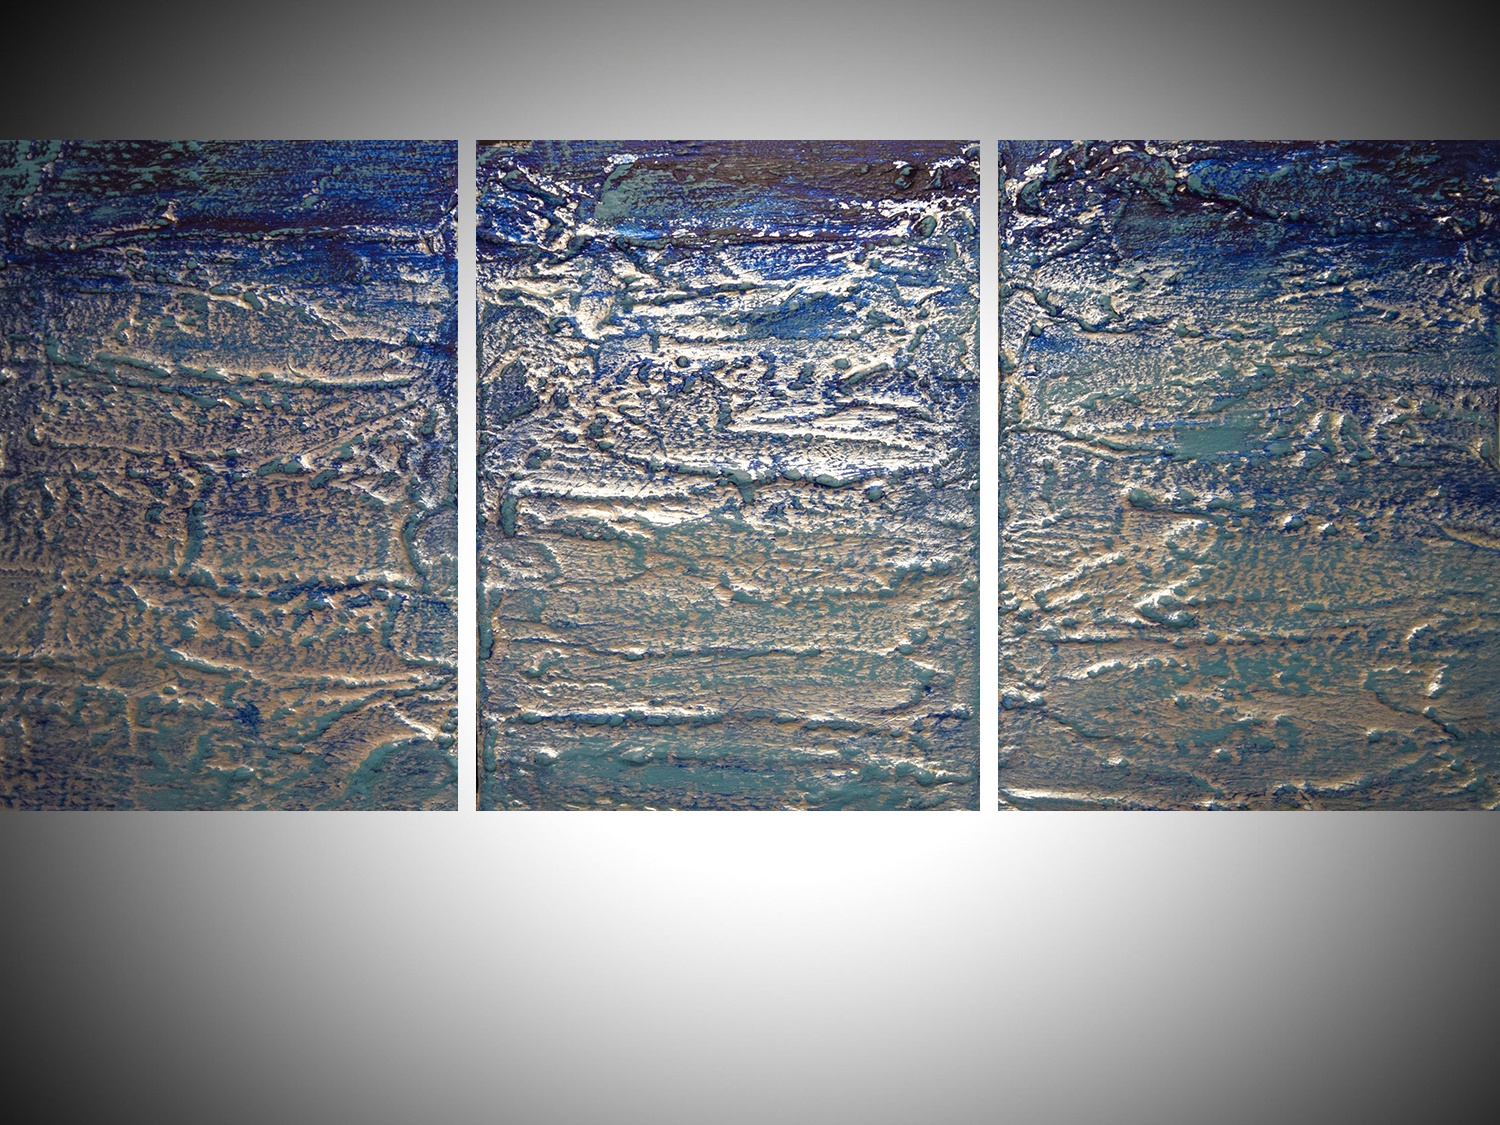 turquoise art triptych painting 48 x 20 inches turquiose triptych turquioise artwork turquoise painting abstract art animal triptych